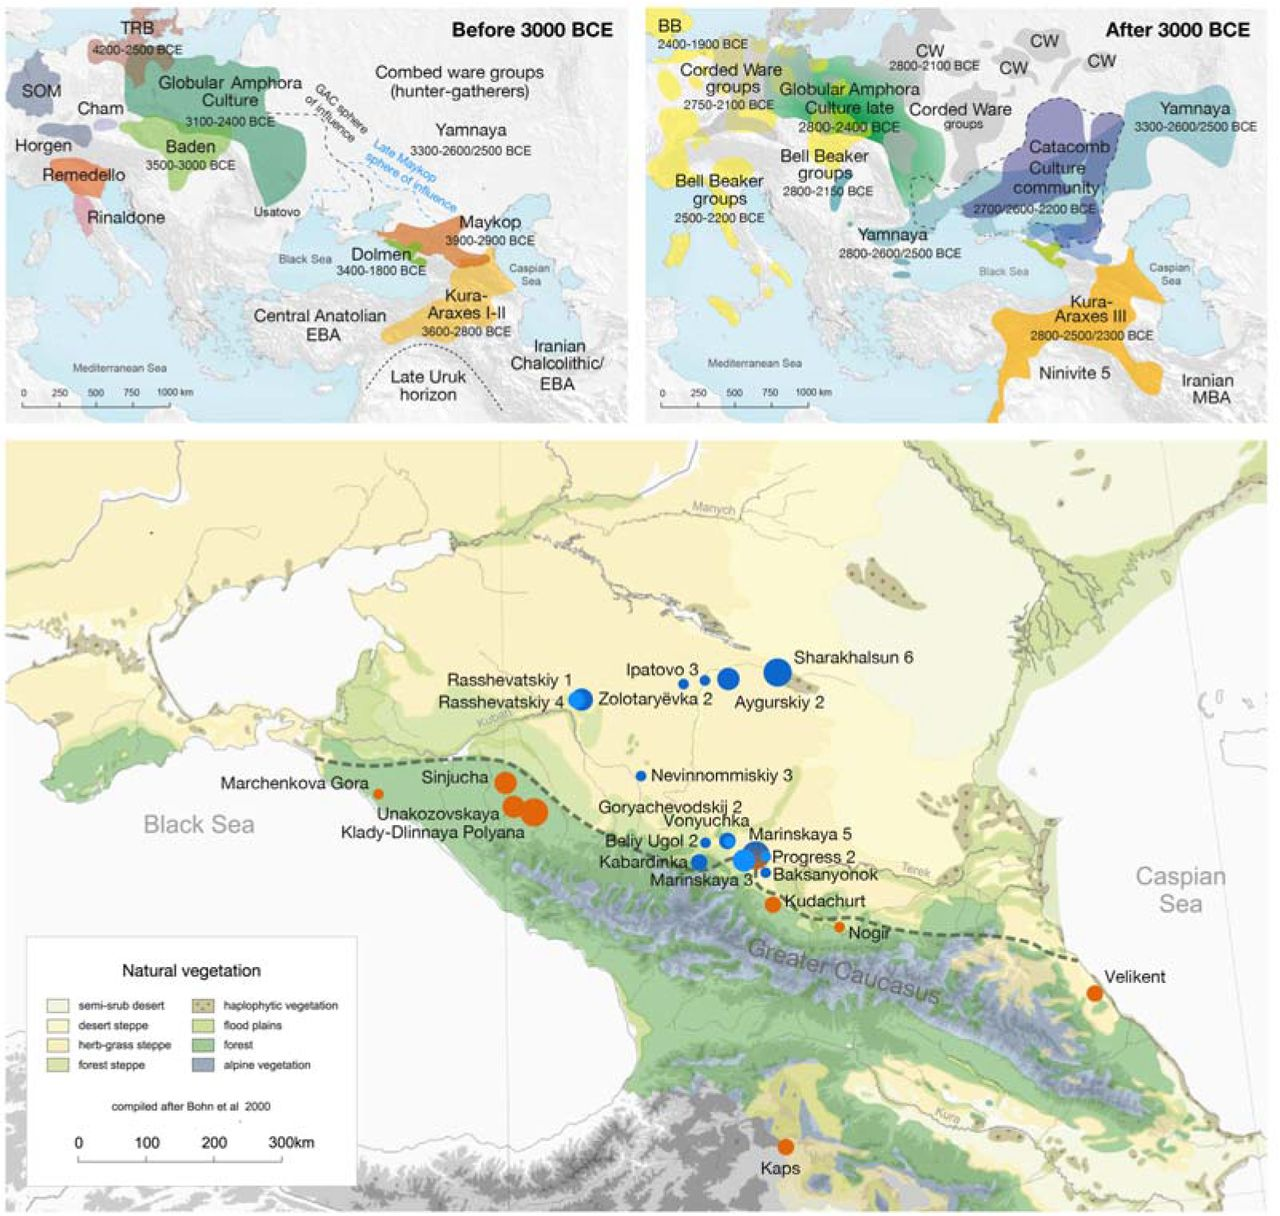 The genetic prehistory of the Greater Caucasus | bioRxiv